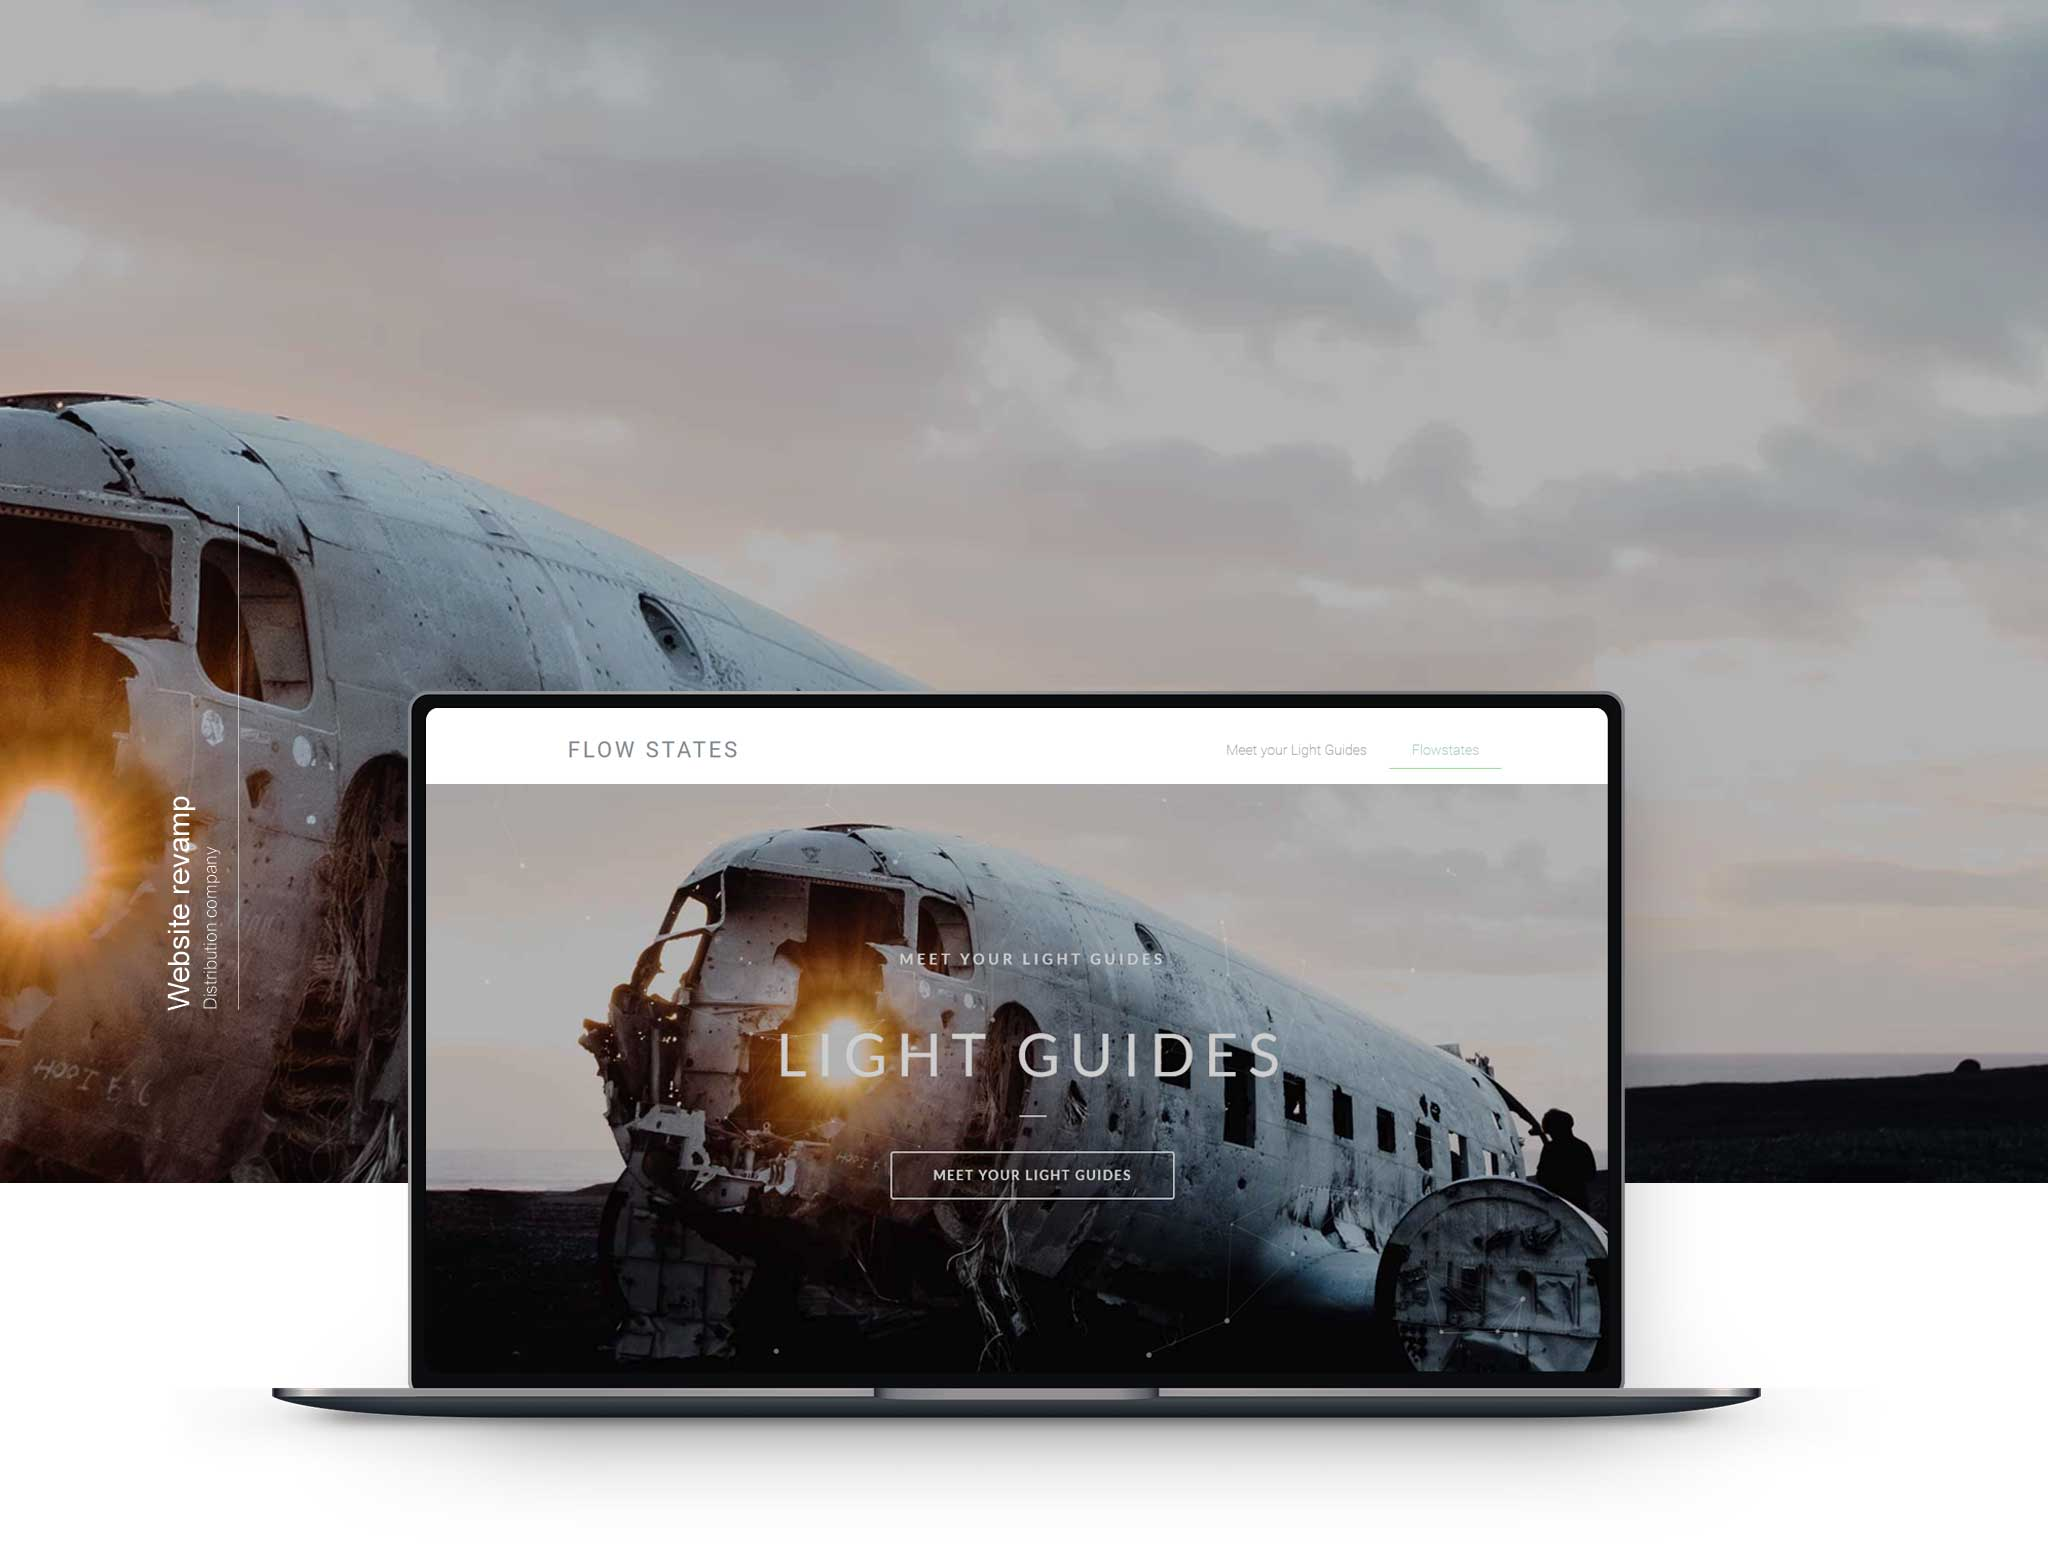 Showcase Work On Moving Flow States Website From Squarespace To WordPress